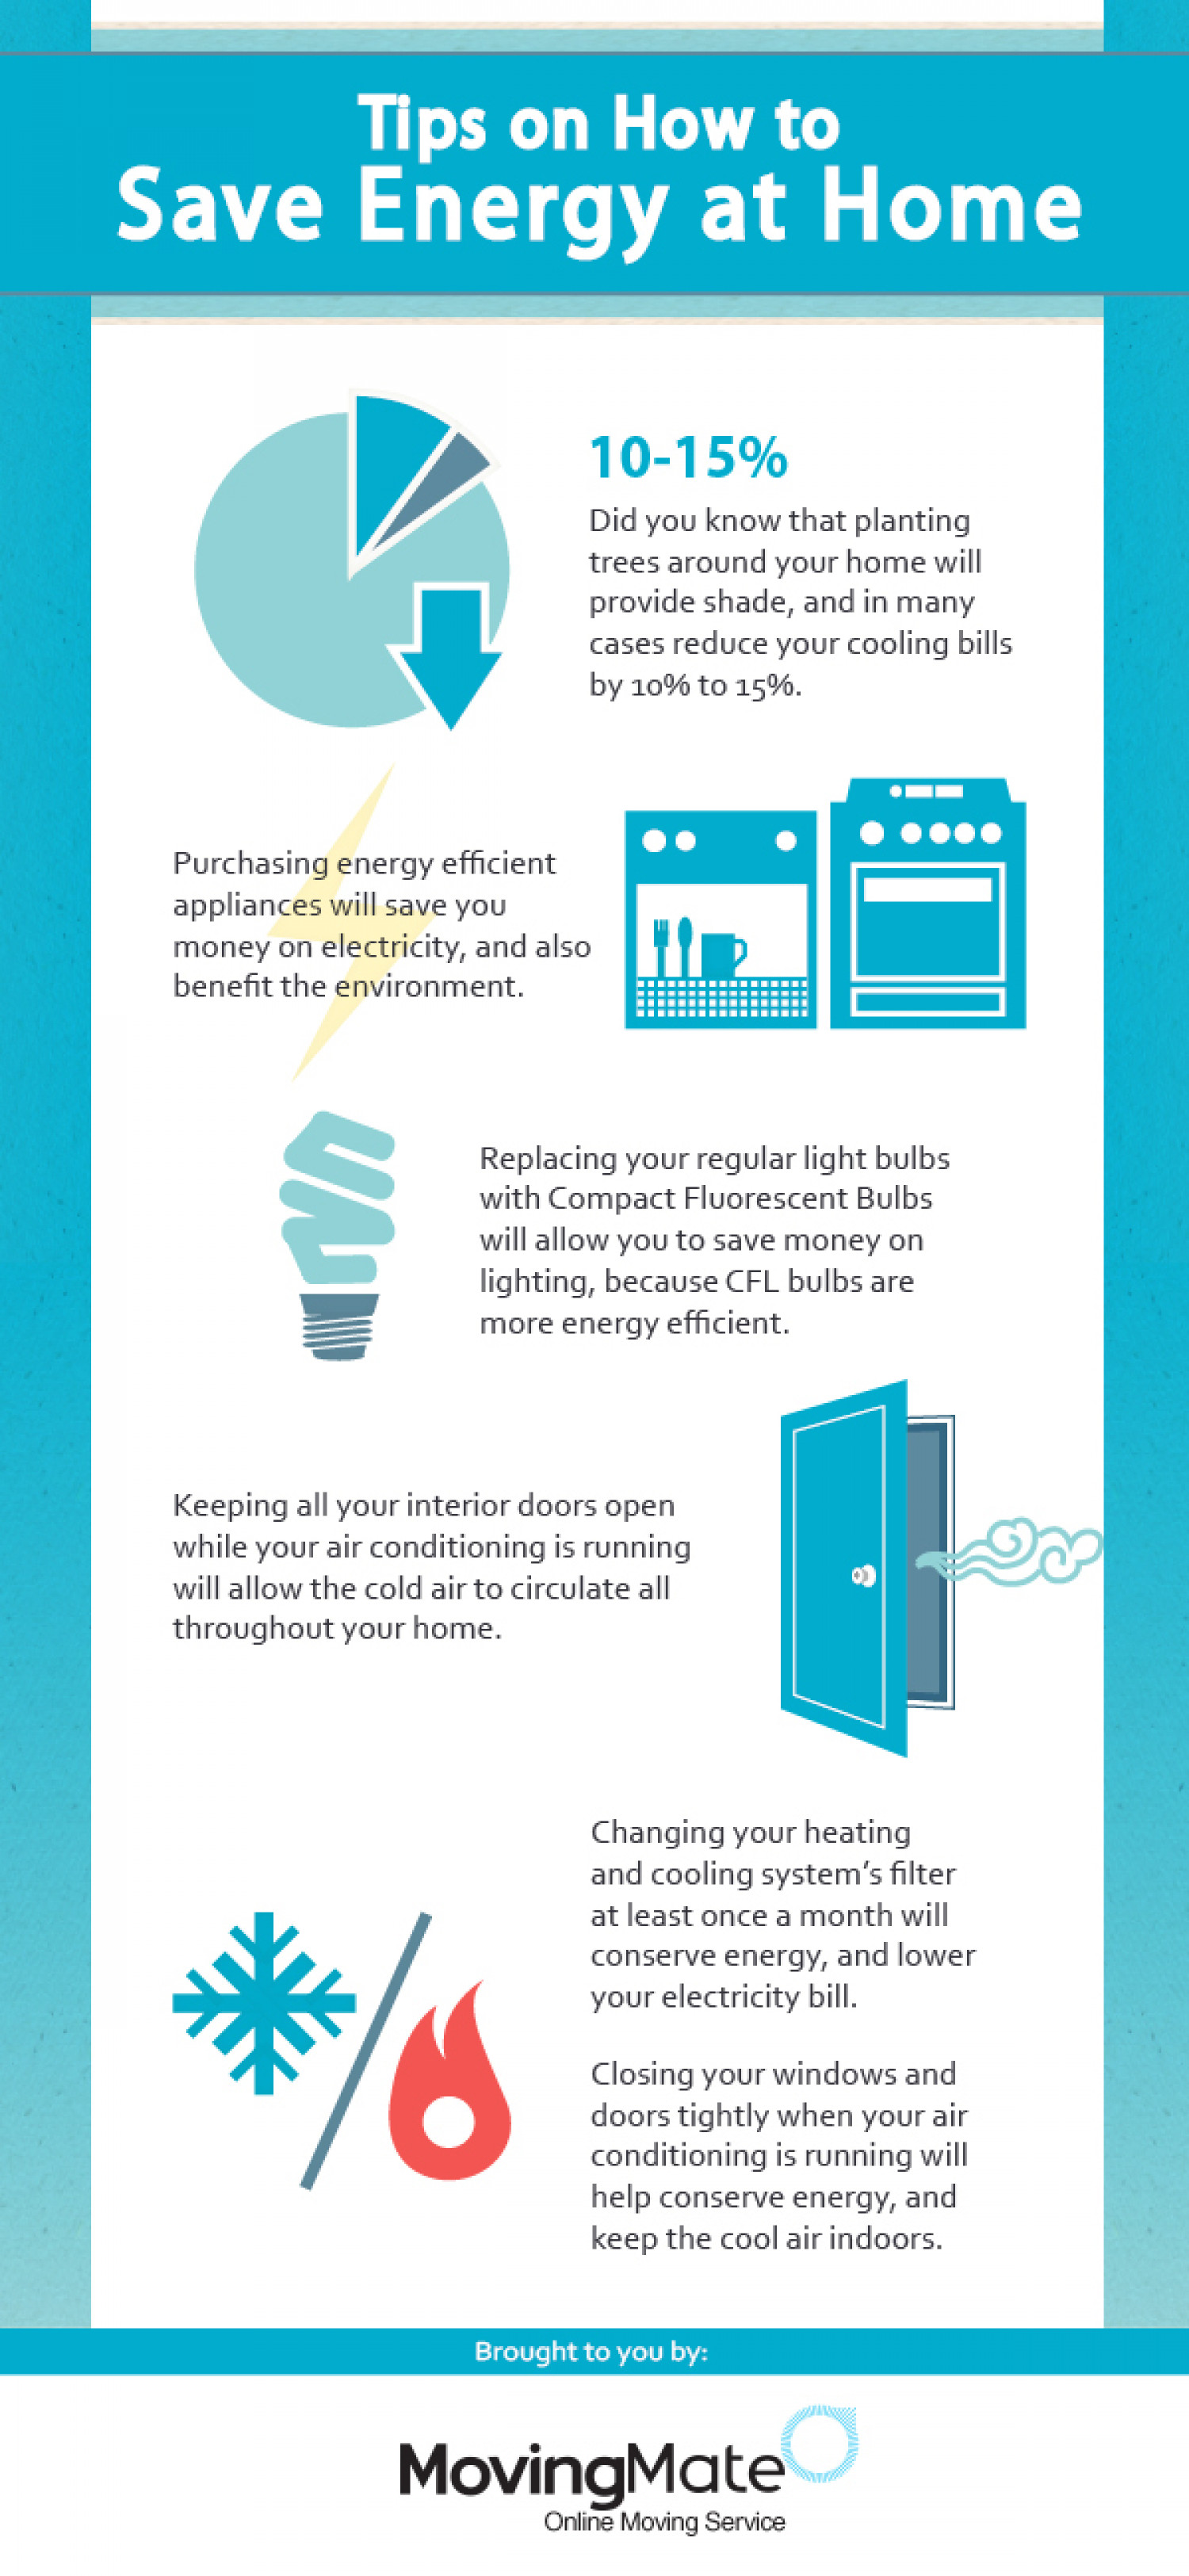 Tips on How to Save Energy at Home Infographic